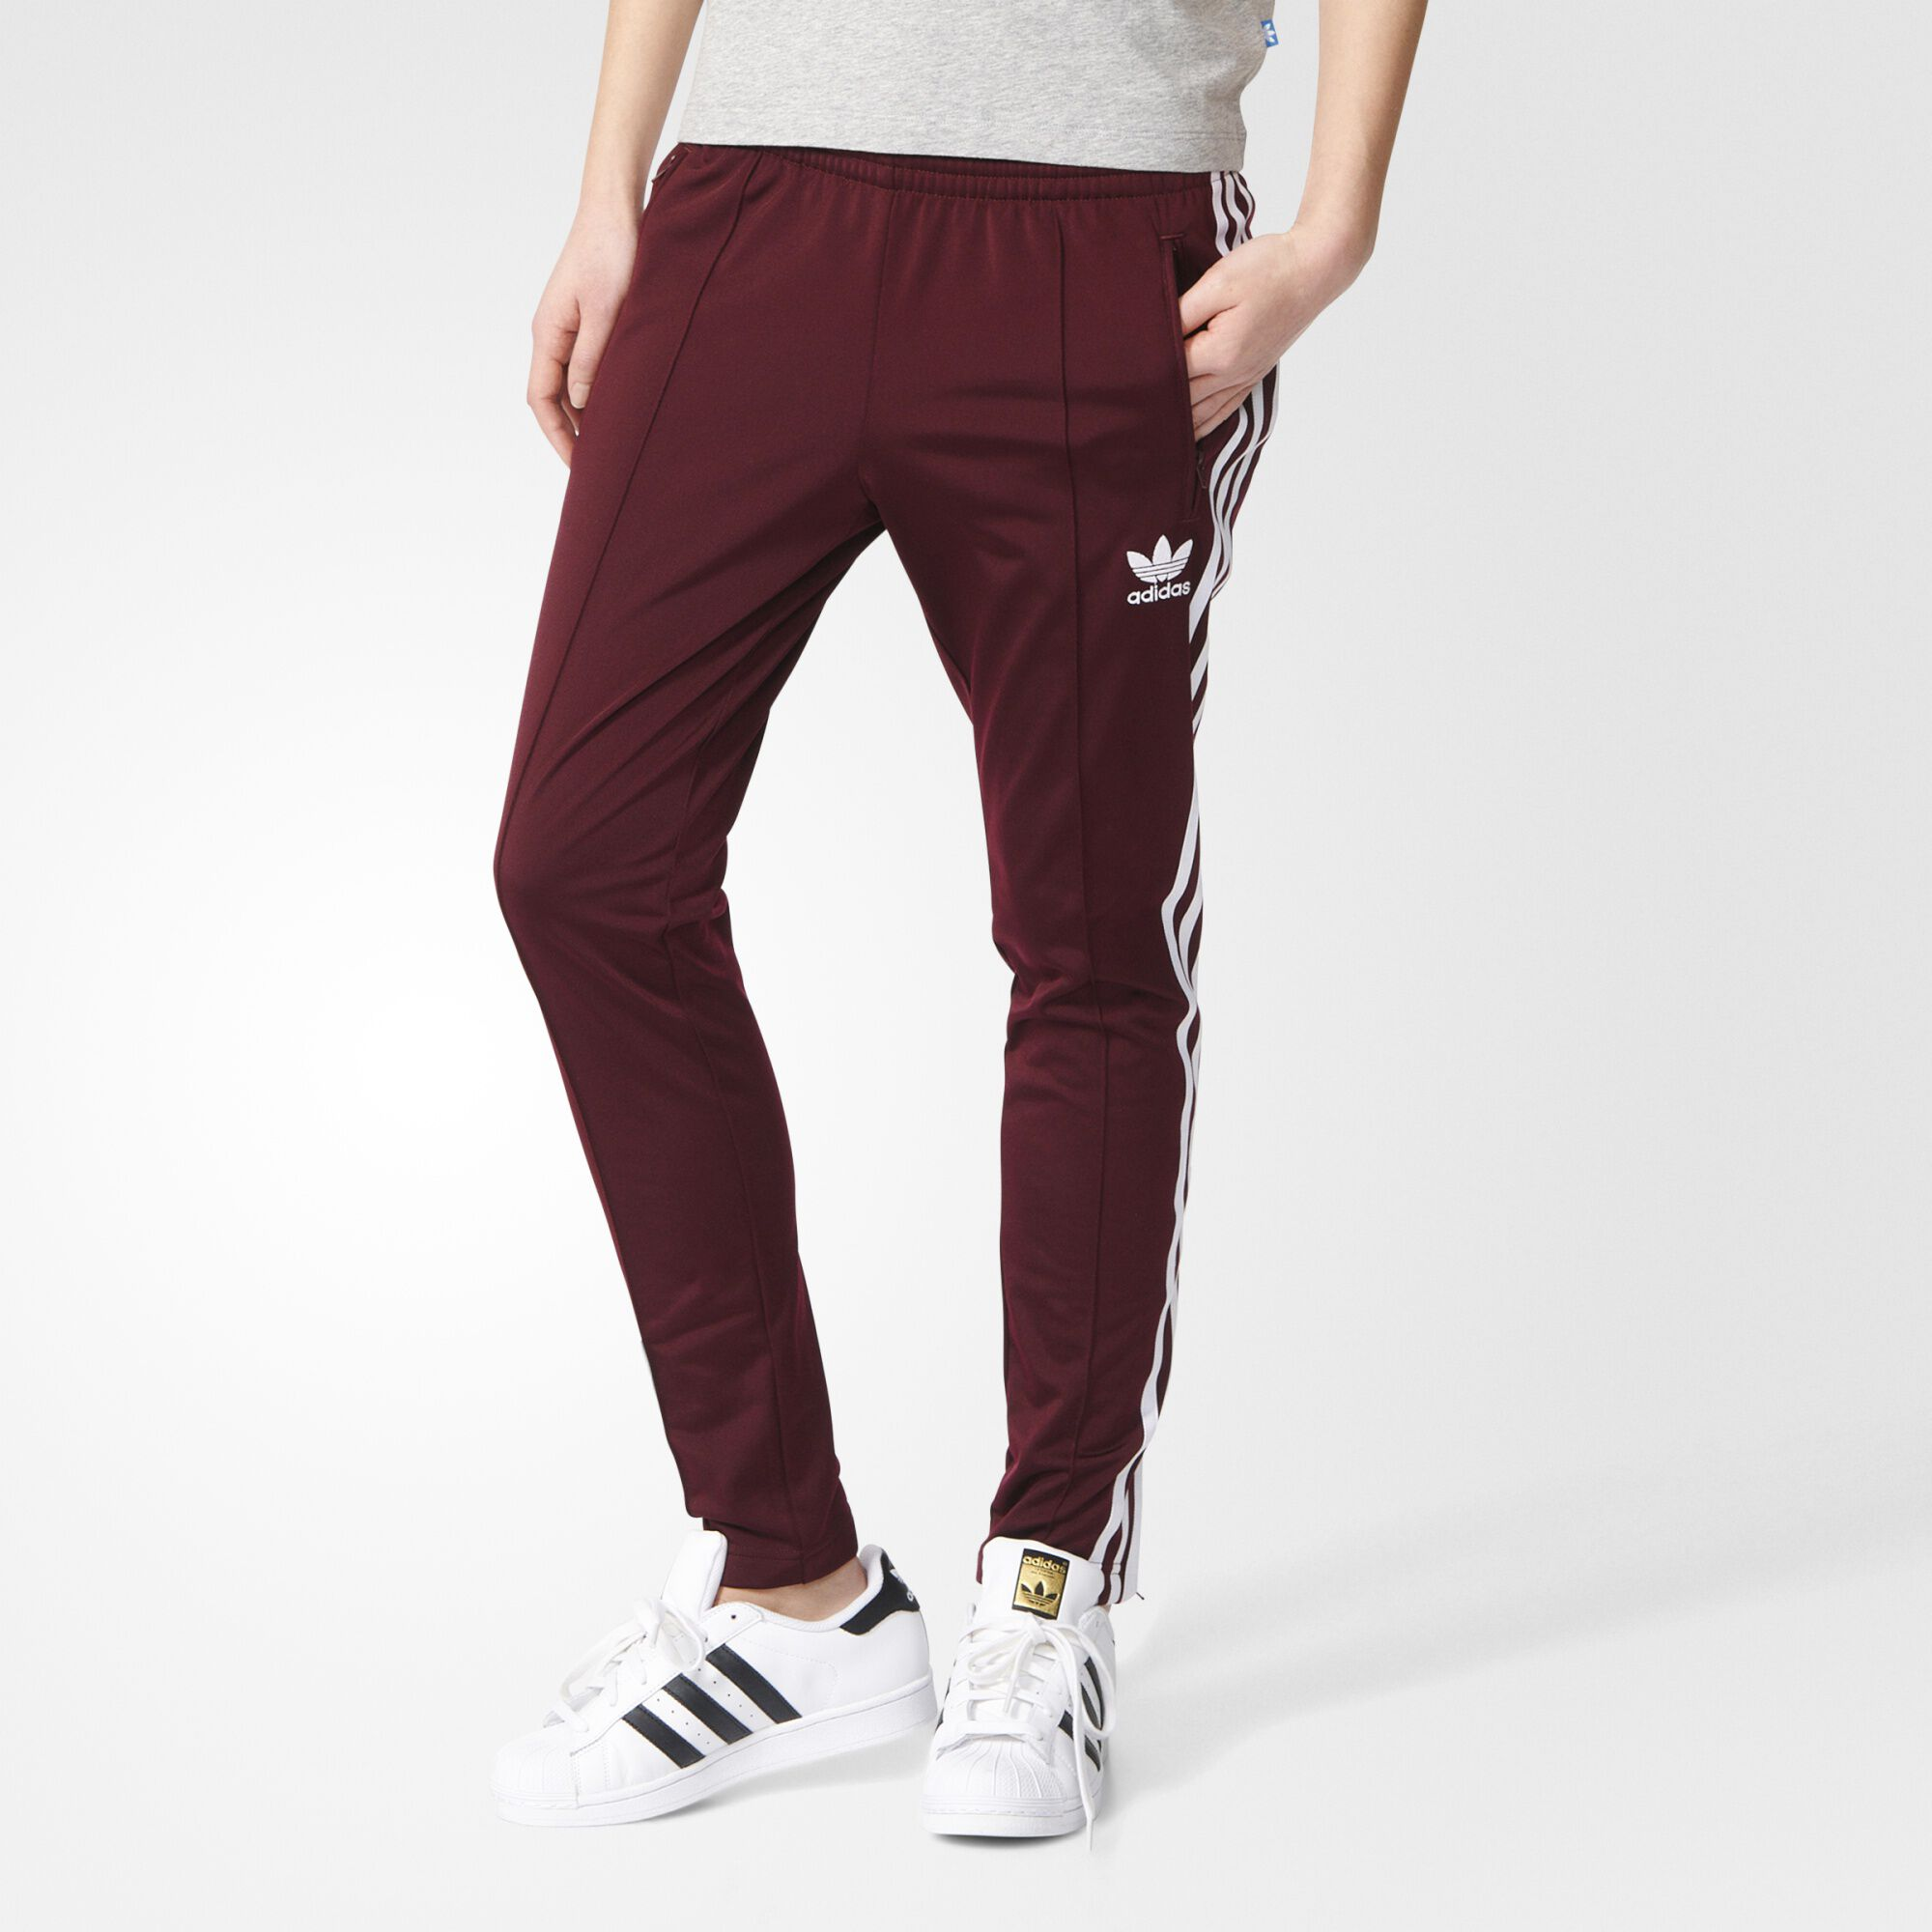 Maroon Pants Brown Shoes